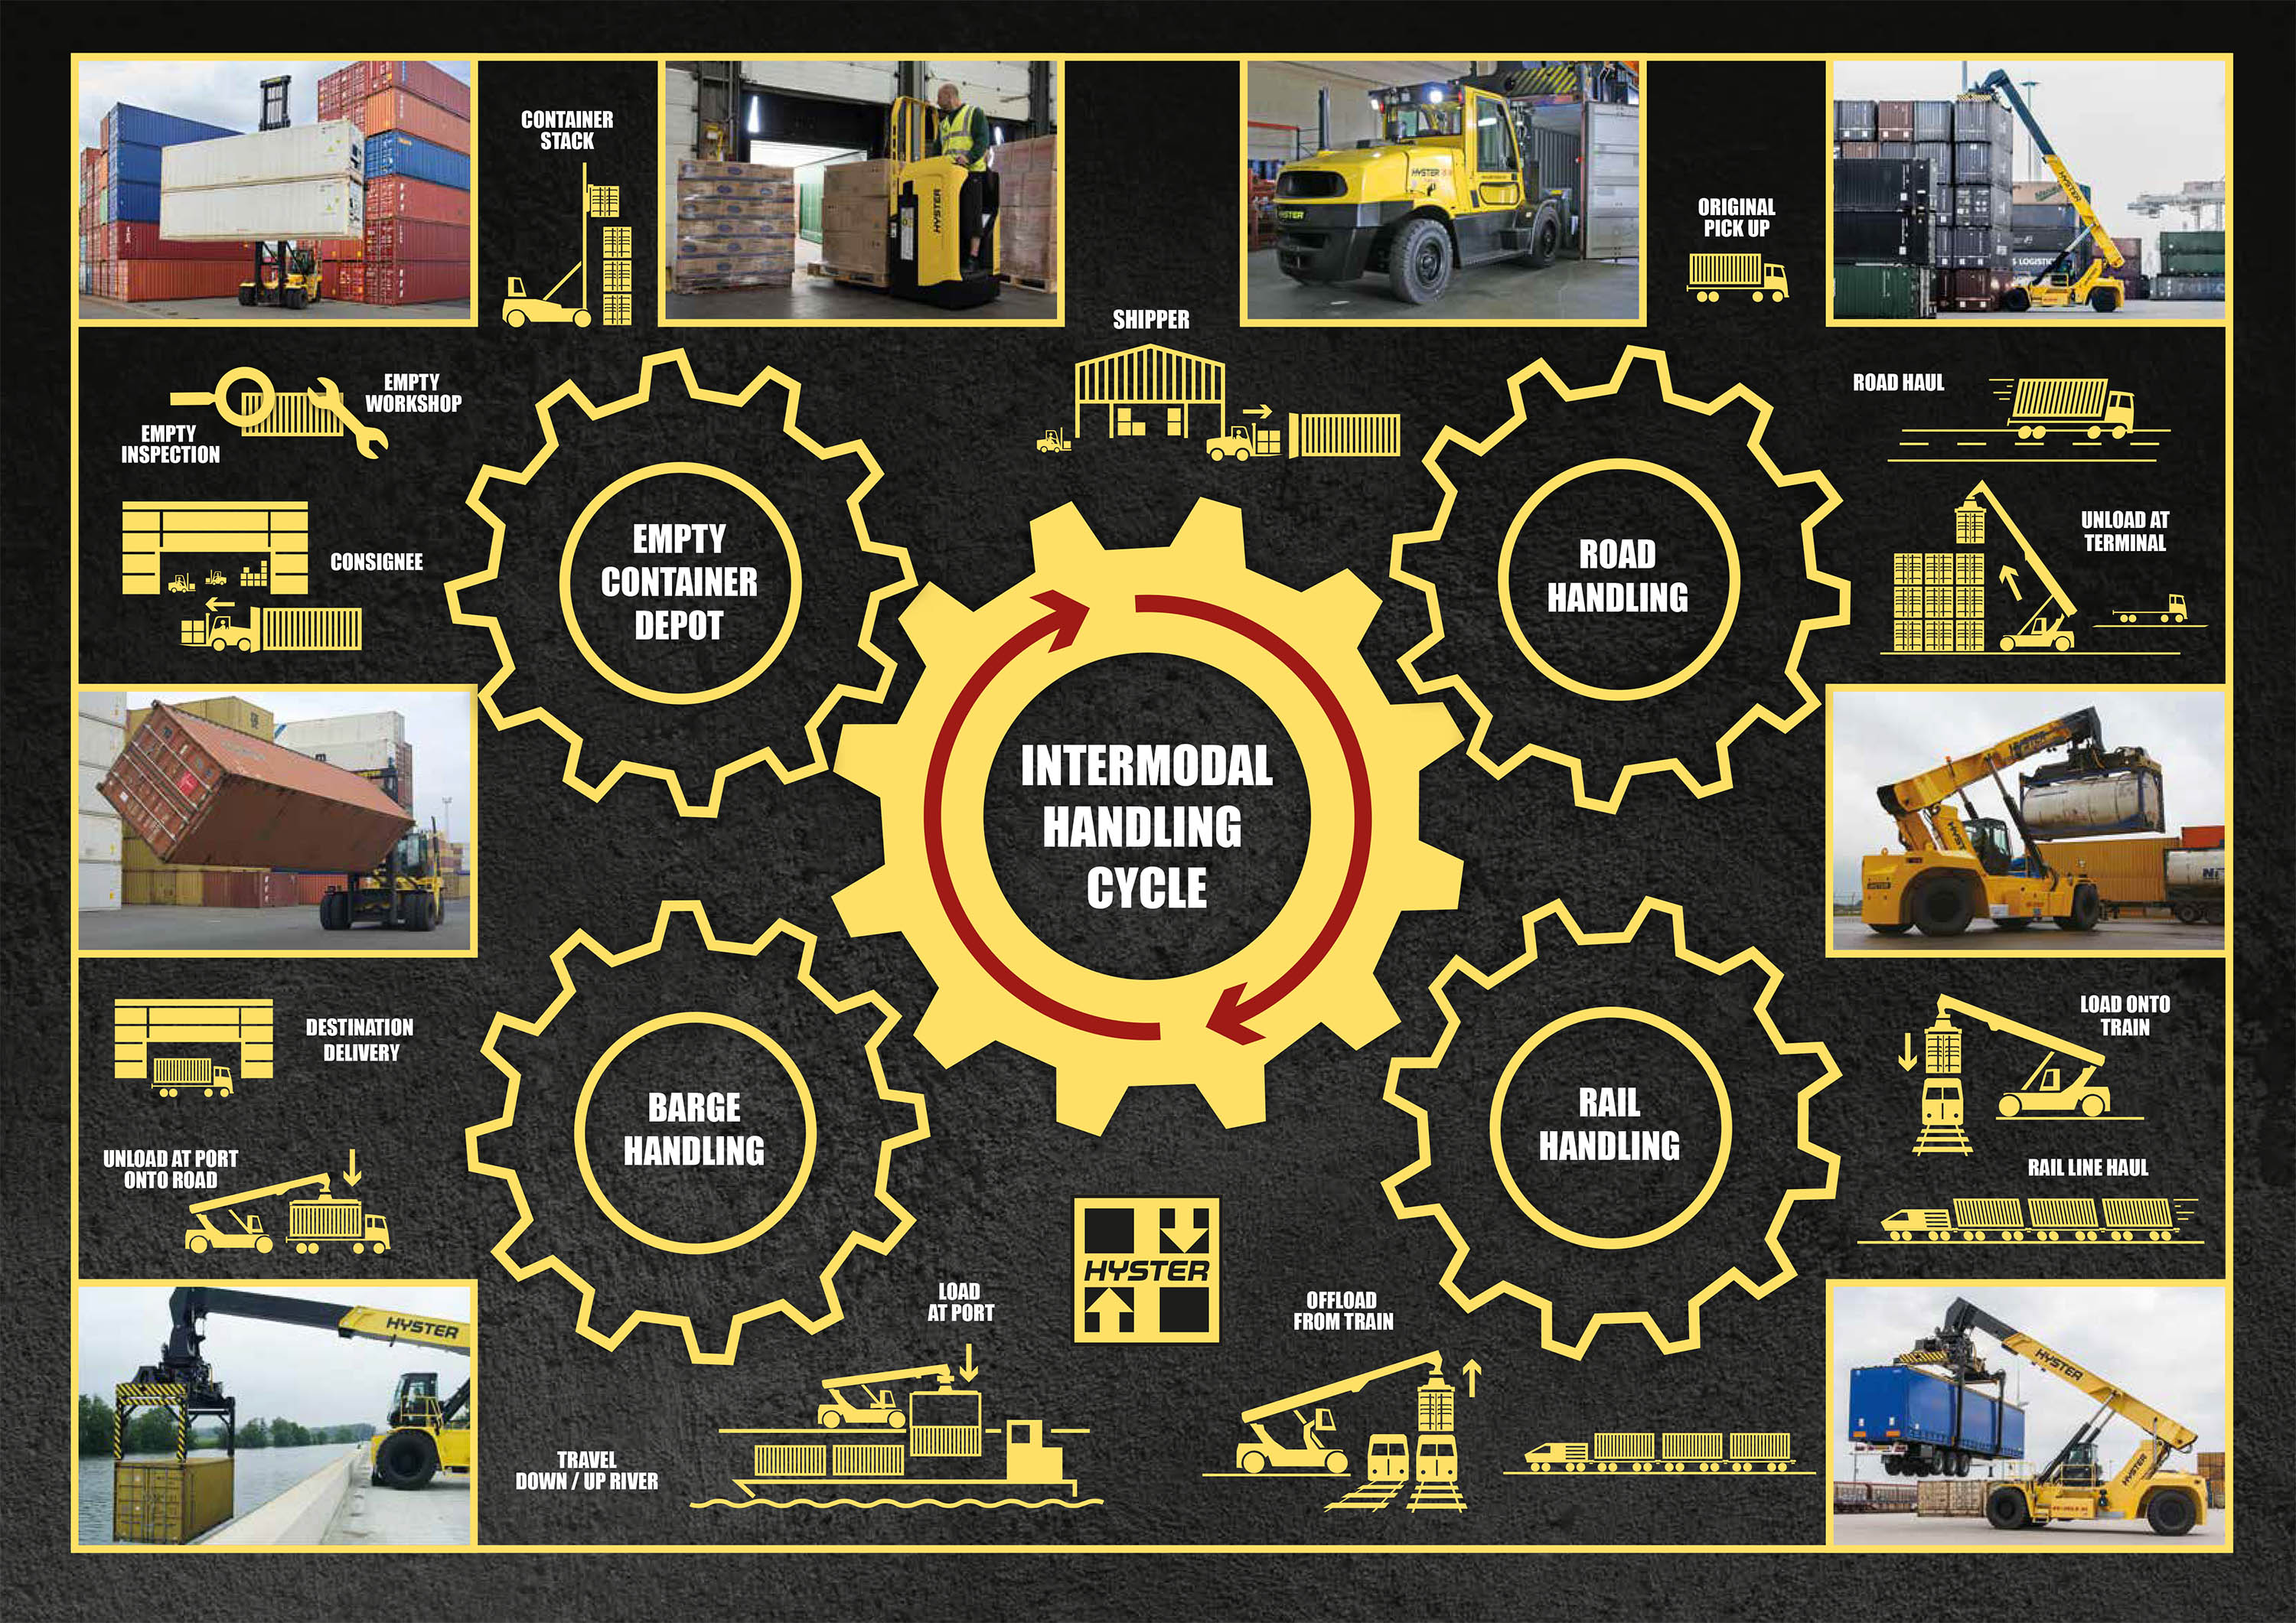 Hyster_Intermodal_Handling_Cycle_Infographic